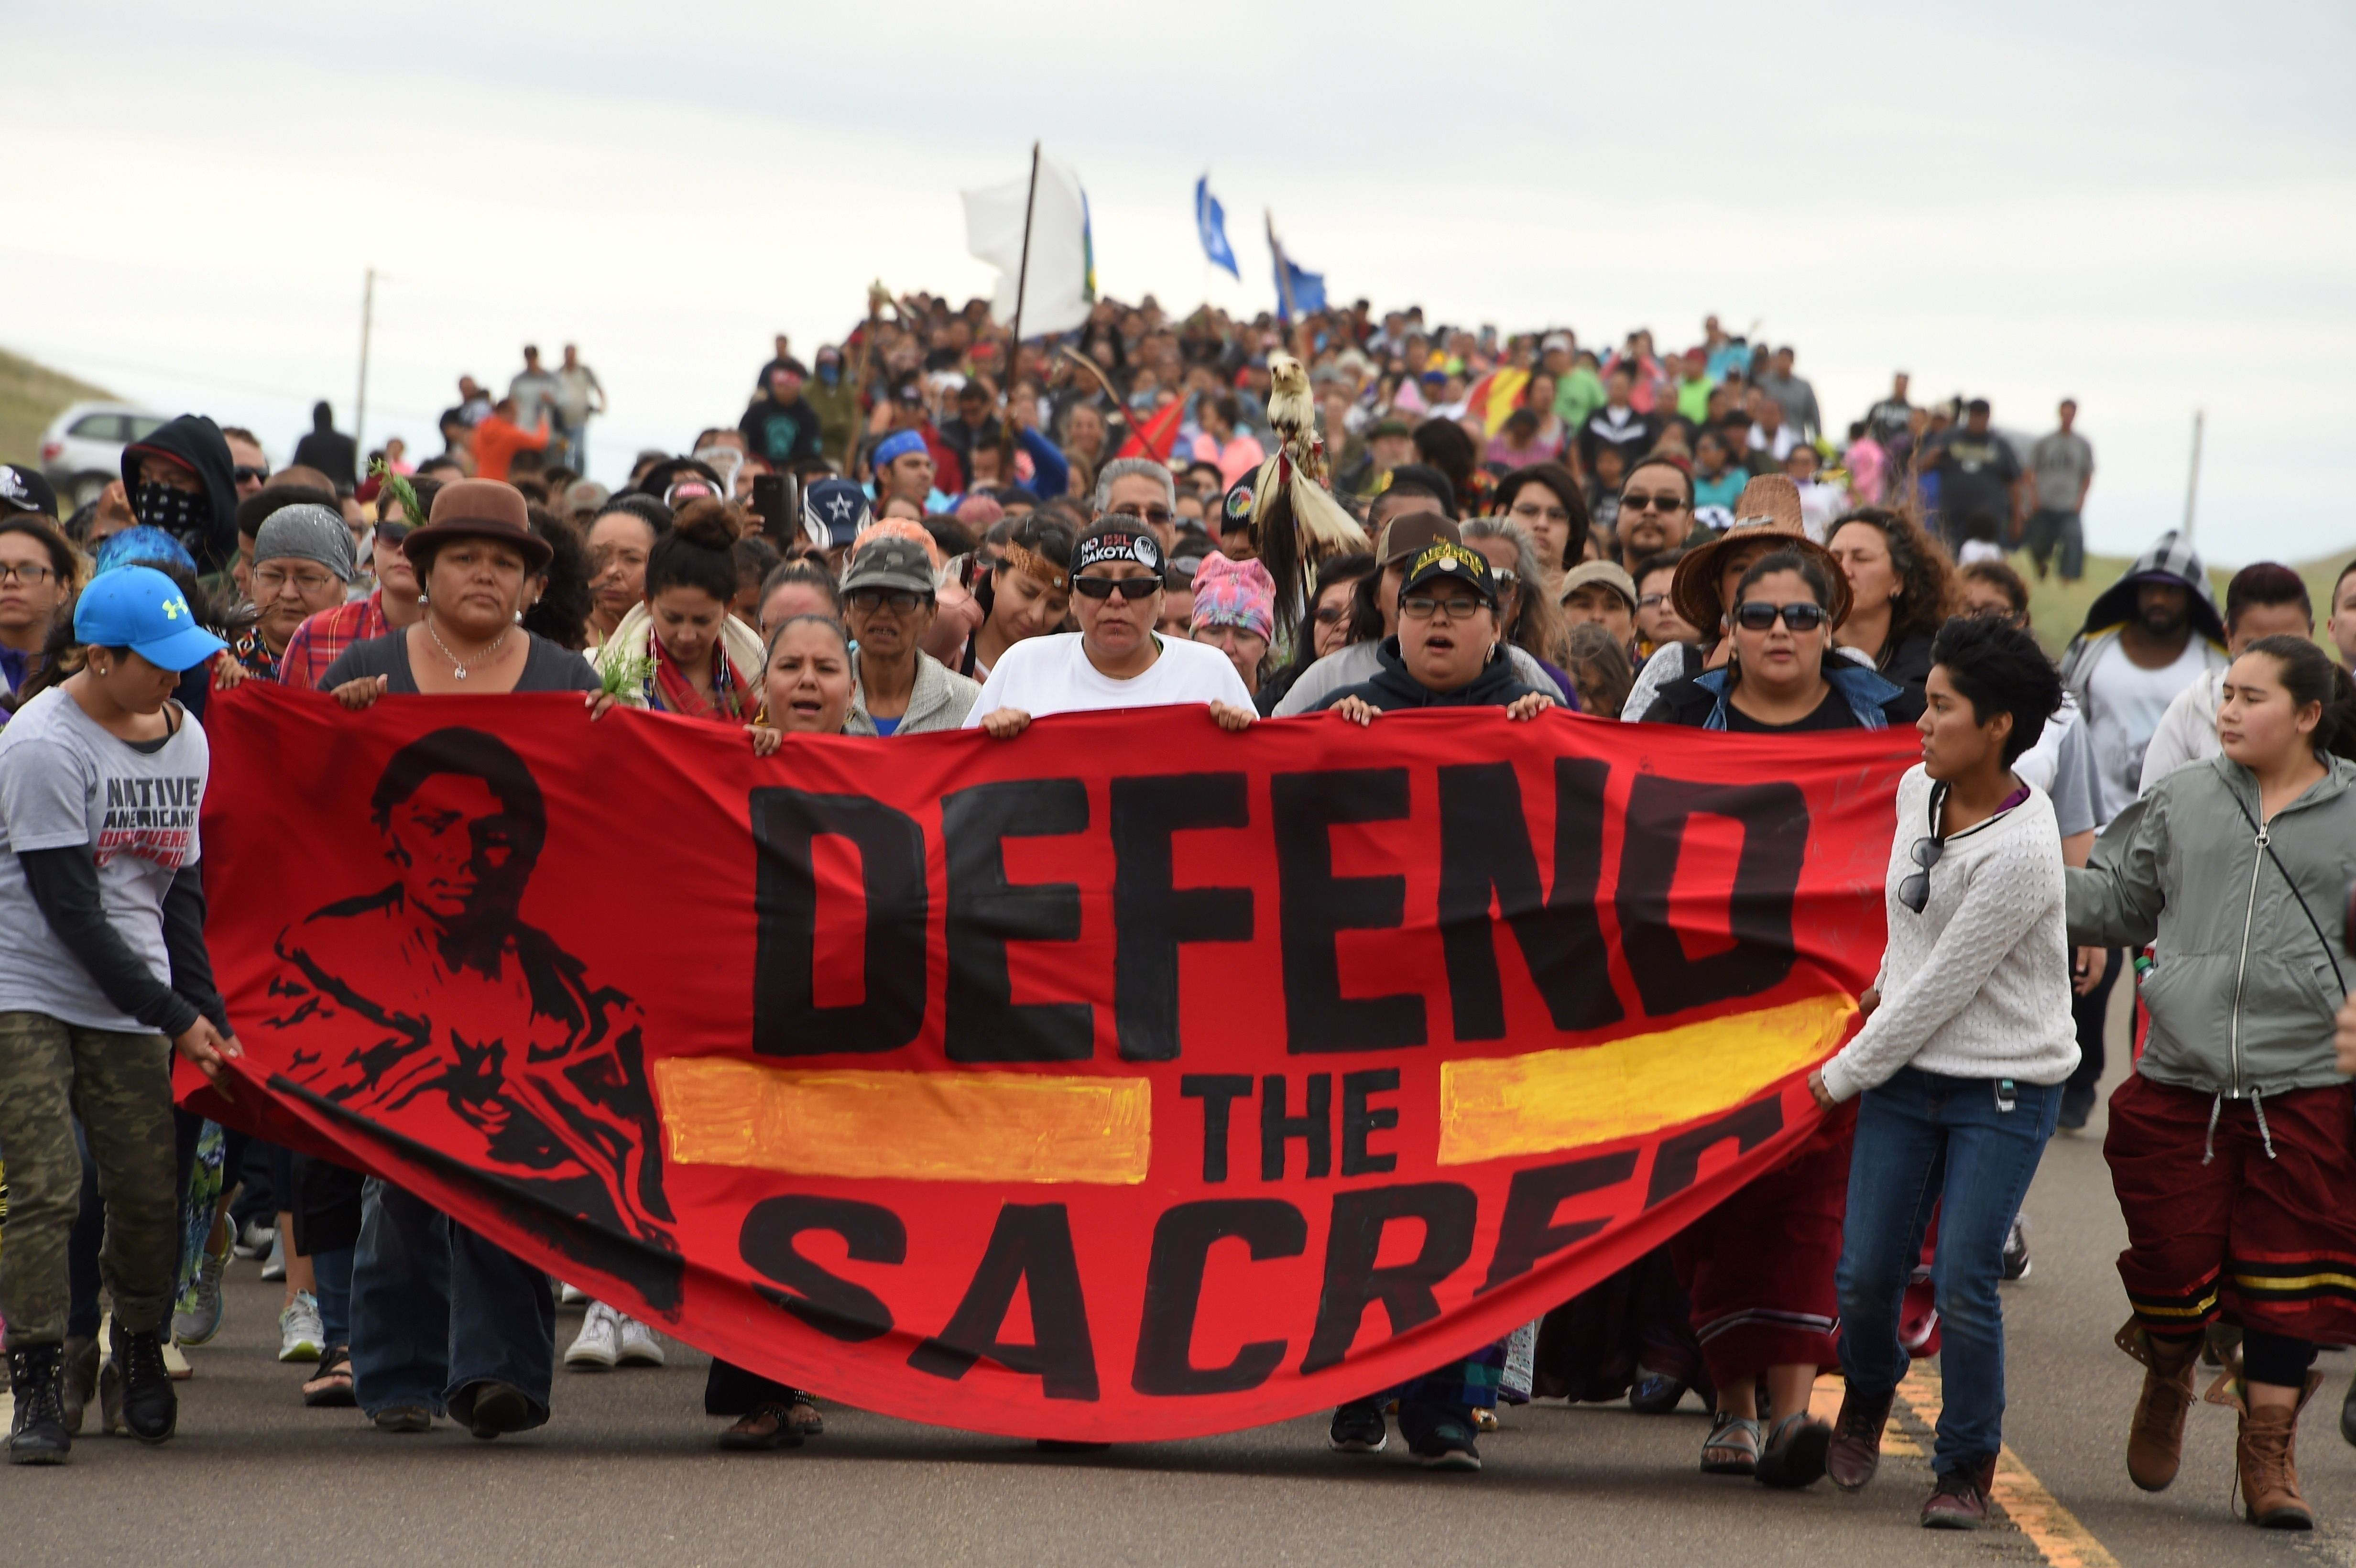 Native Americans march to the site of a sacred burial ground that was disturbed by bulldozers building the Dakota Access Pipeline (DAPL), near the encampment where hundreds of people have gathered to join the Standing Rock Sioux Tribe's protest of the oil pipeline slated to cross the nearby Missouri River, Sept. 4, 2016 near Cannon Ball, North Dakota. Protestors were attacked by dogs and sprayed with an eye and respiratory irritant yesterday when they arrived at the site to protest after learning of the bulldozing work. (Credit: Robyn Beck/AFP/Getty Images)